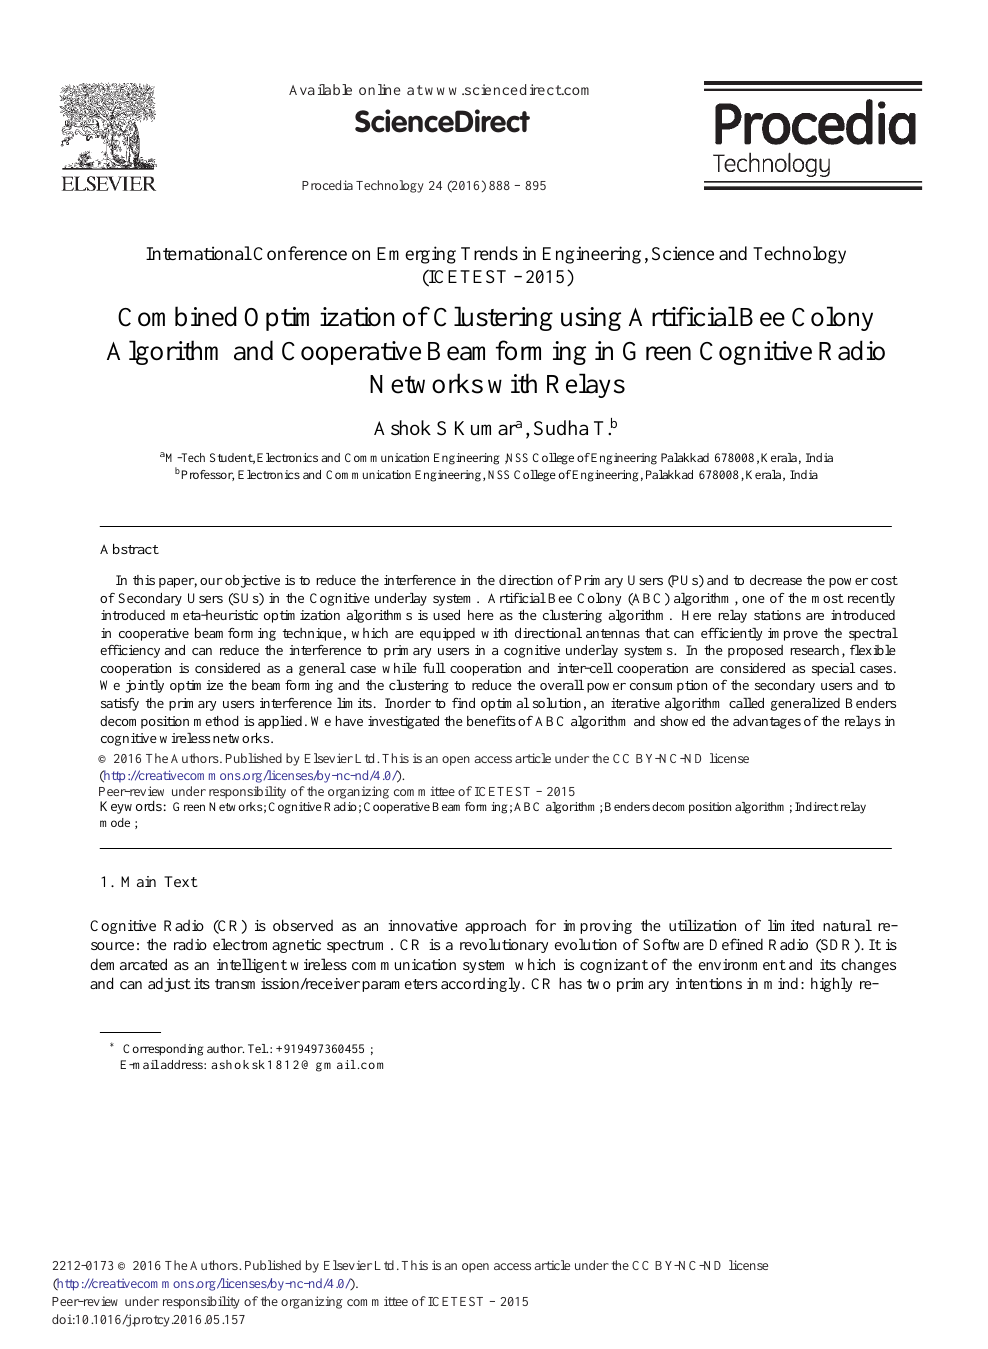 Combined Optimization of Clustering Using Artificial Bee